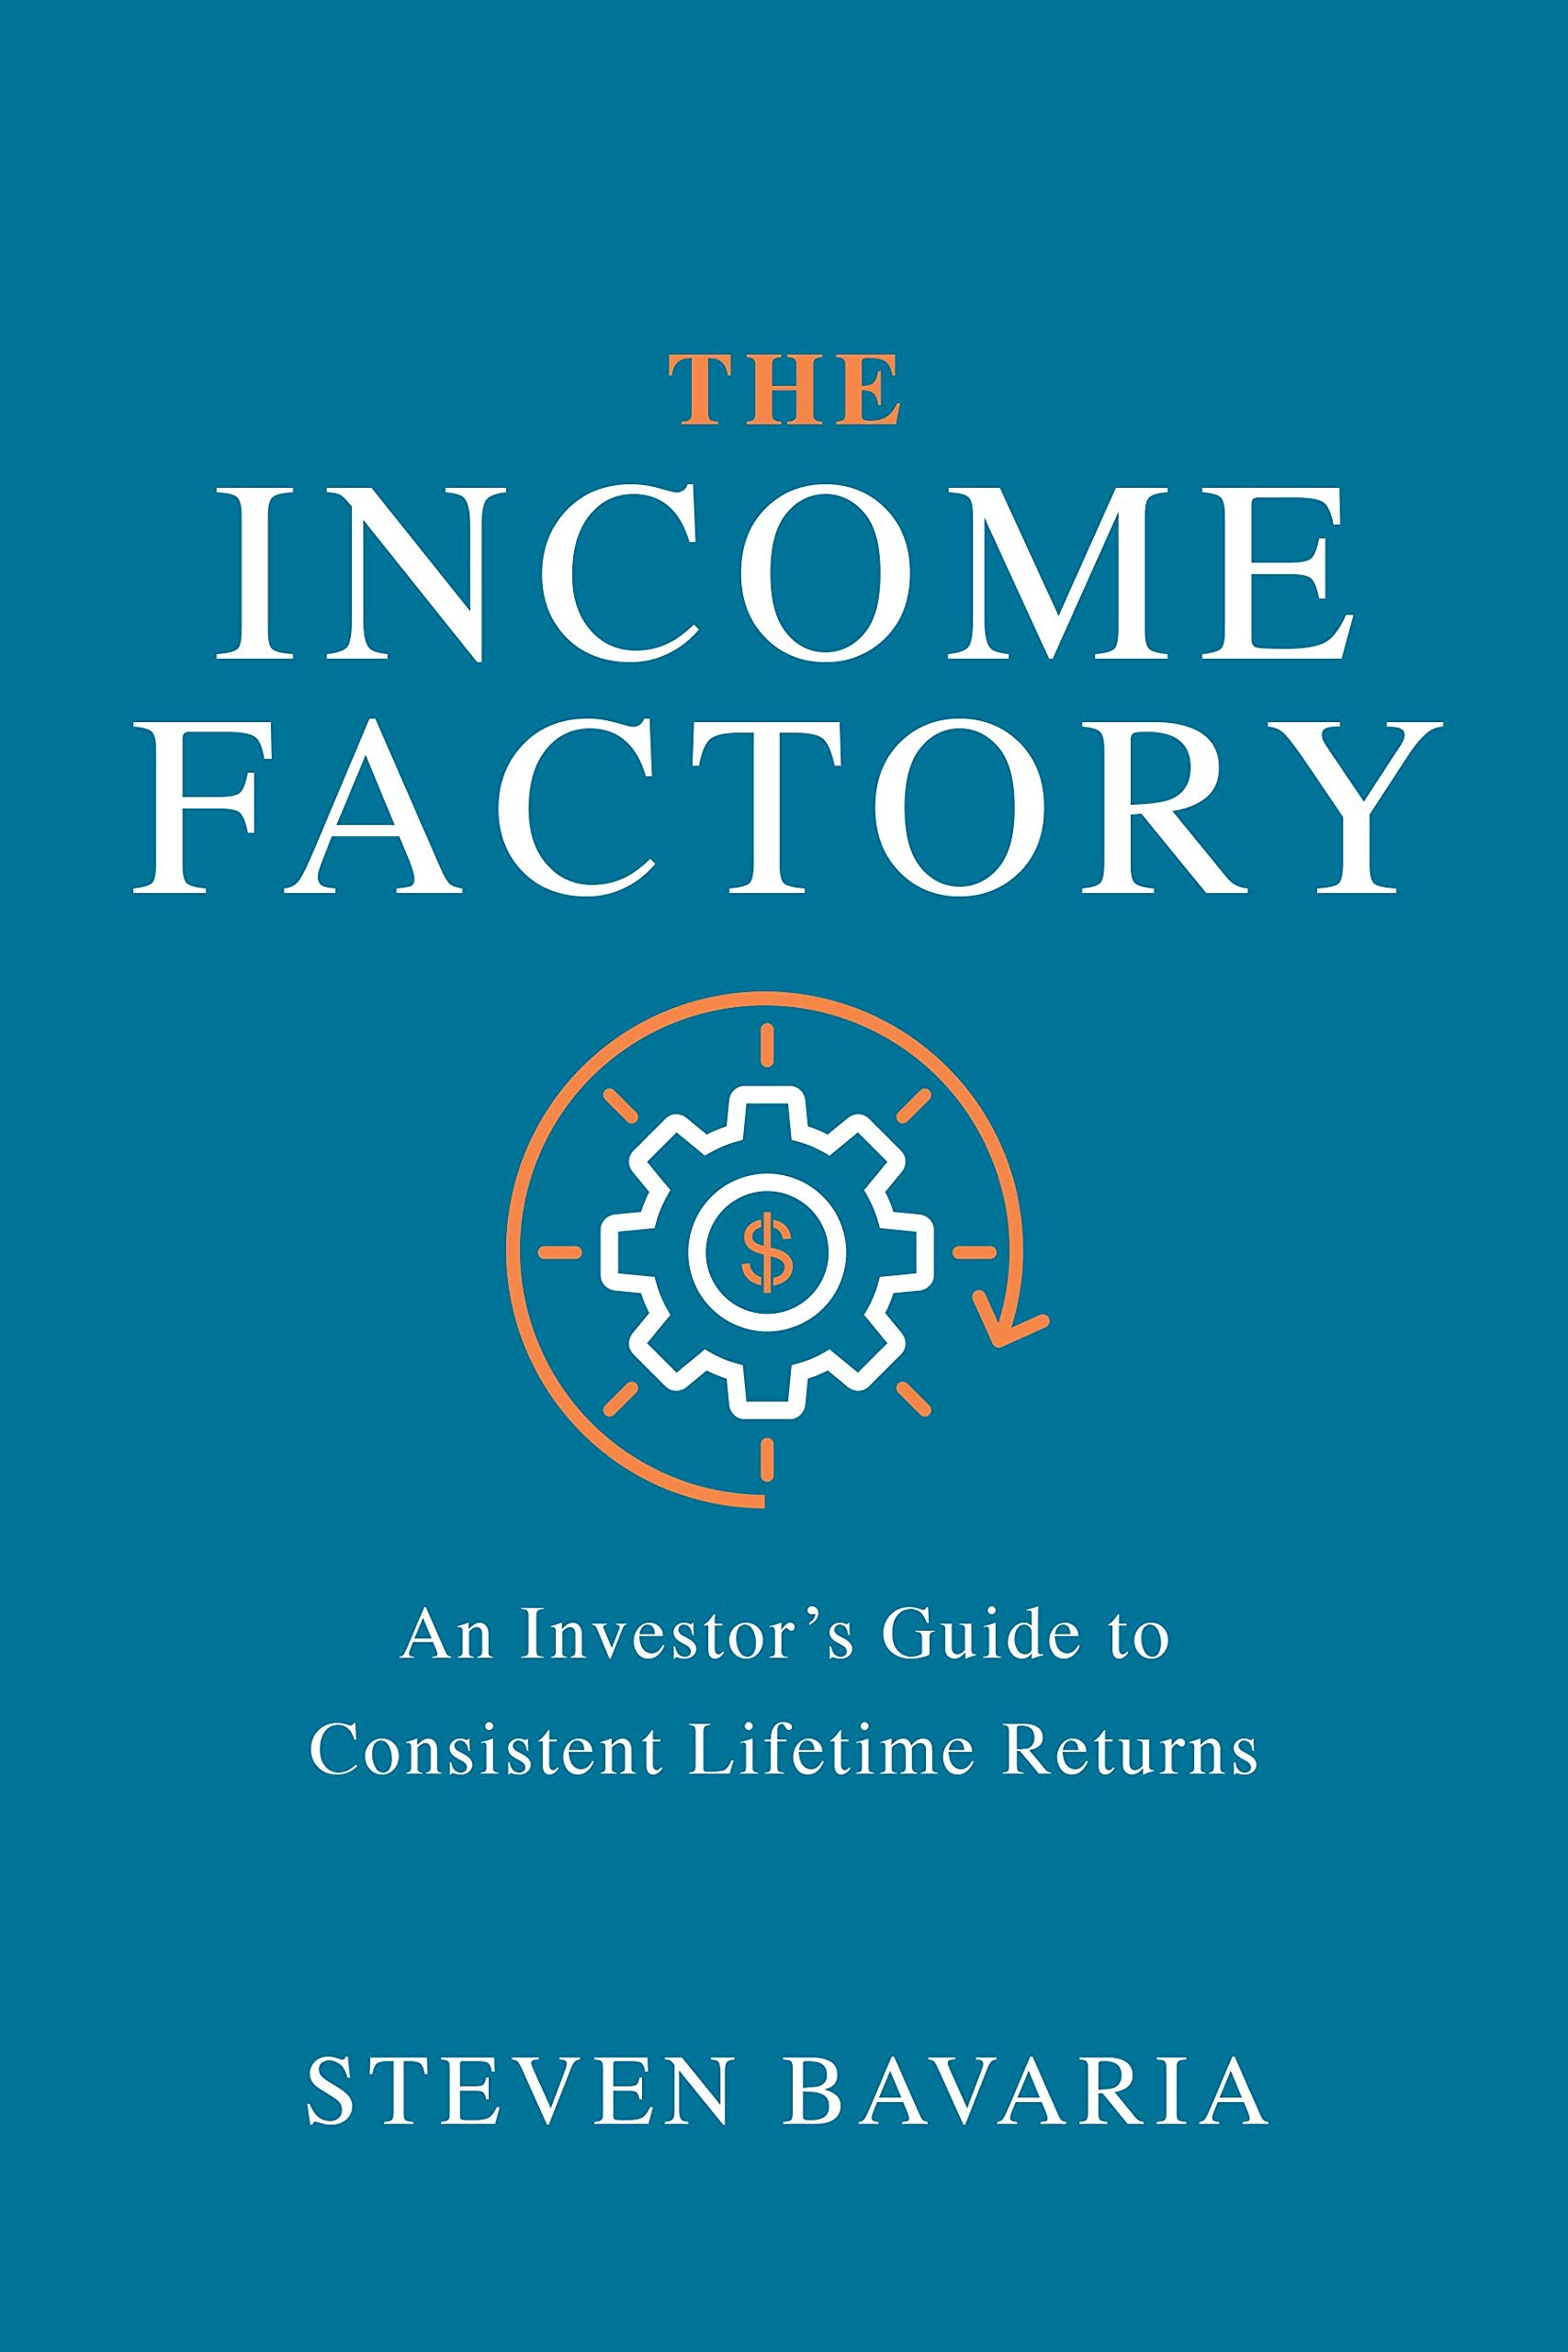 The Income Factory: An Investor's Guide to Consistent Lifetime Returns by McGraw-Hill Education